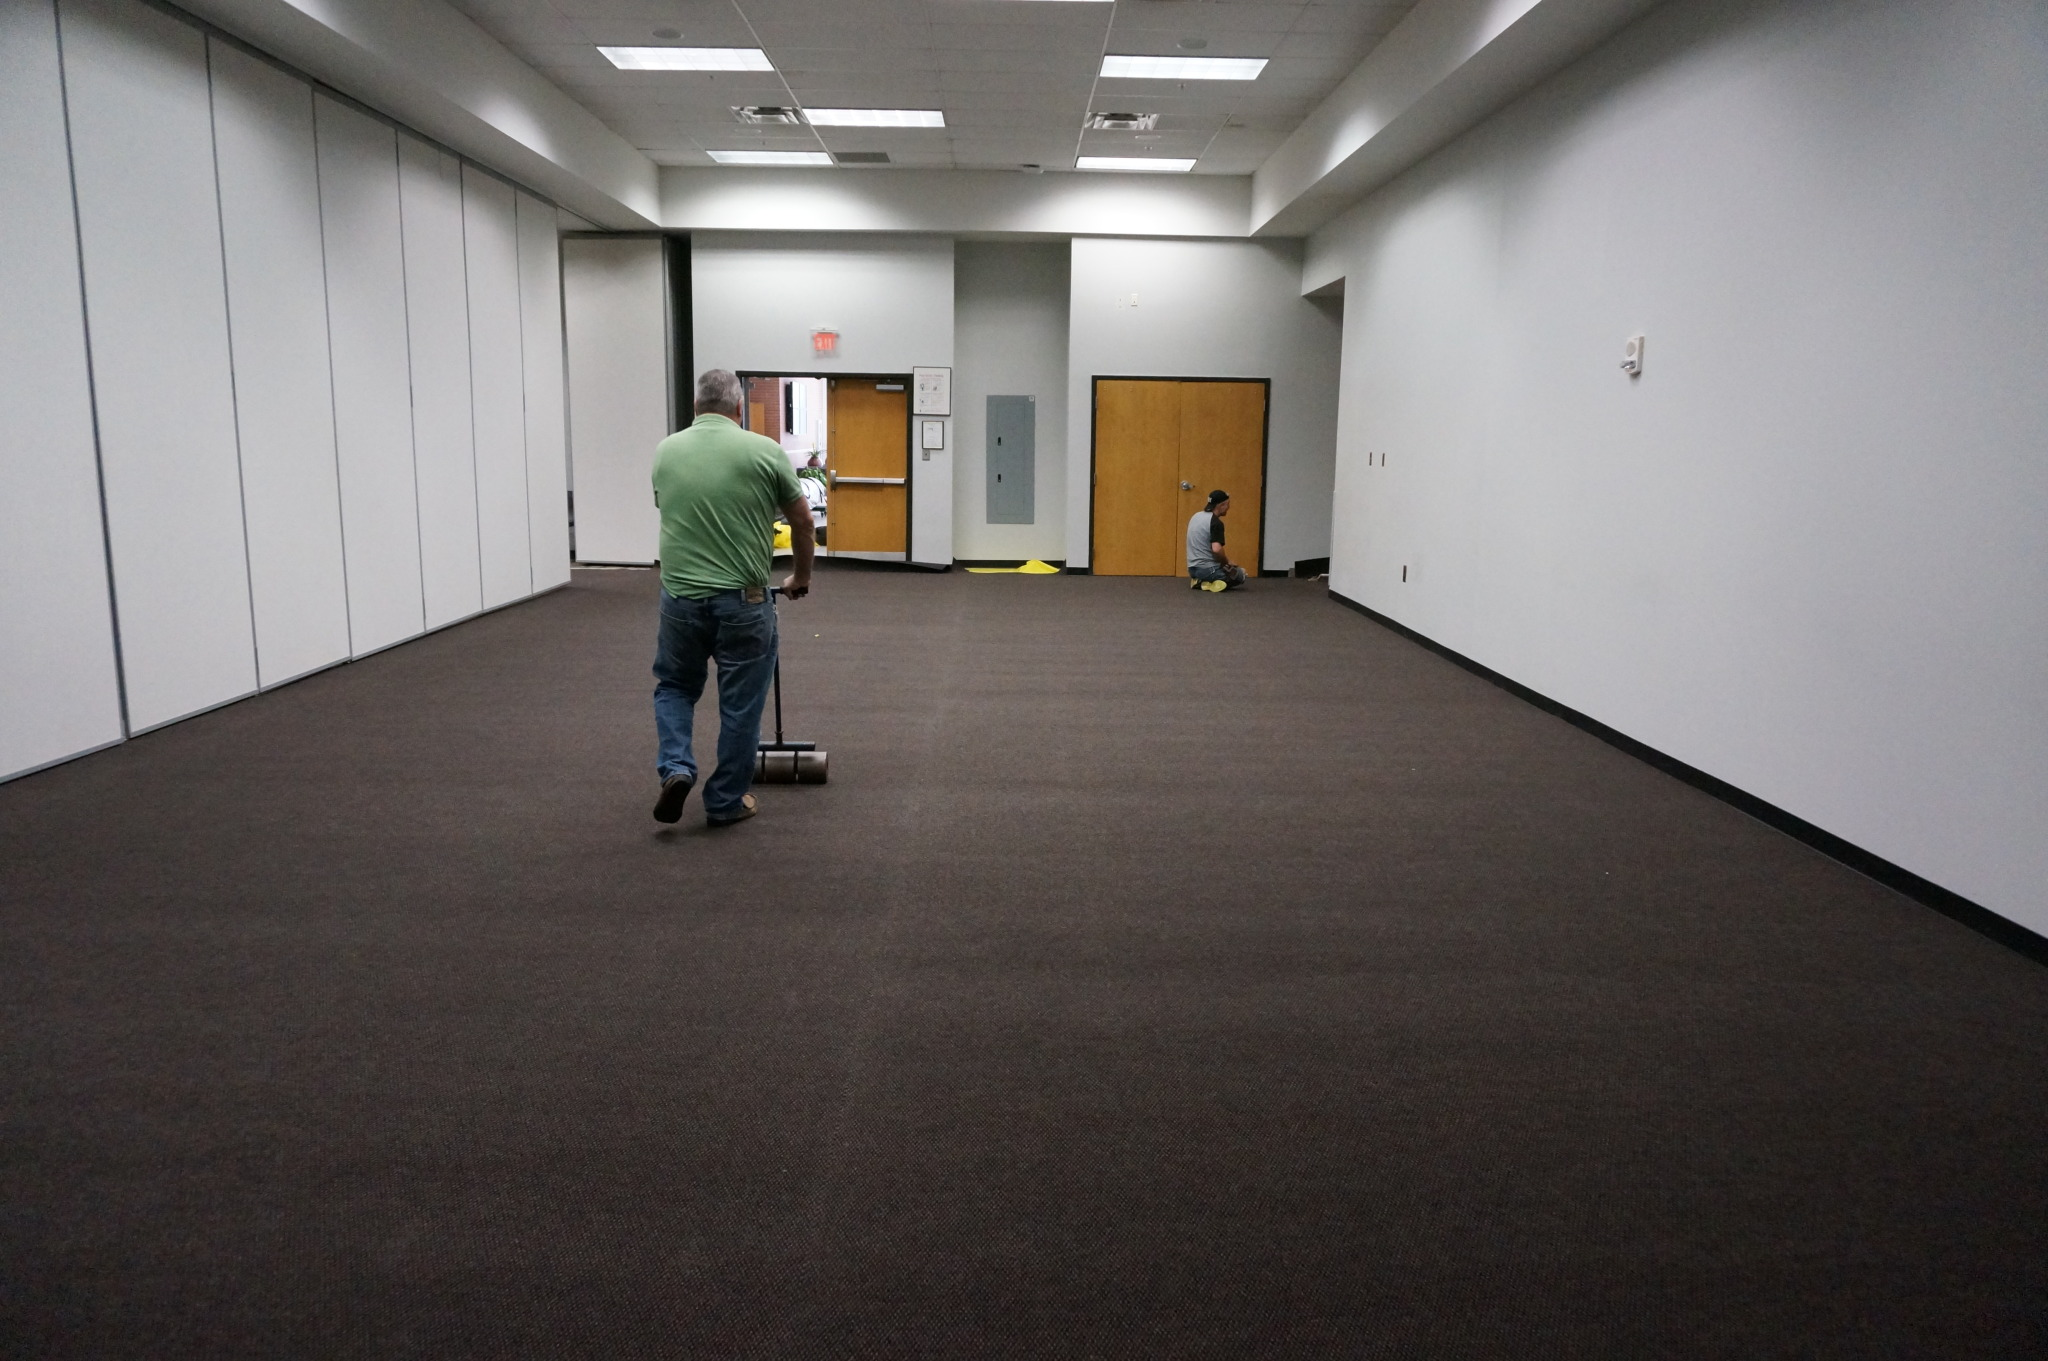 The carpet is being secured to the floor with a roller.